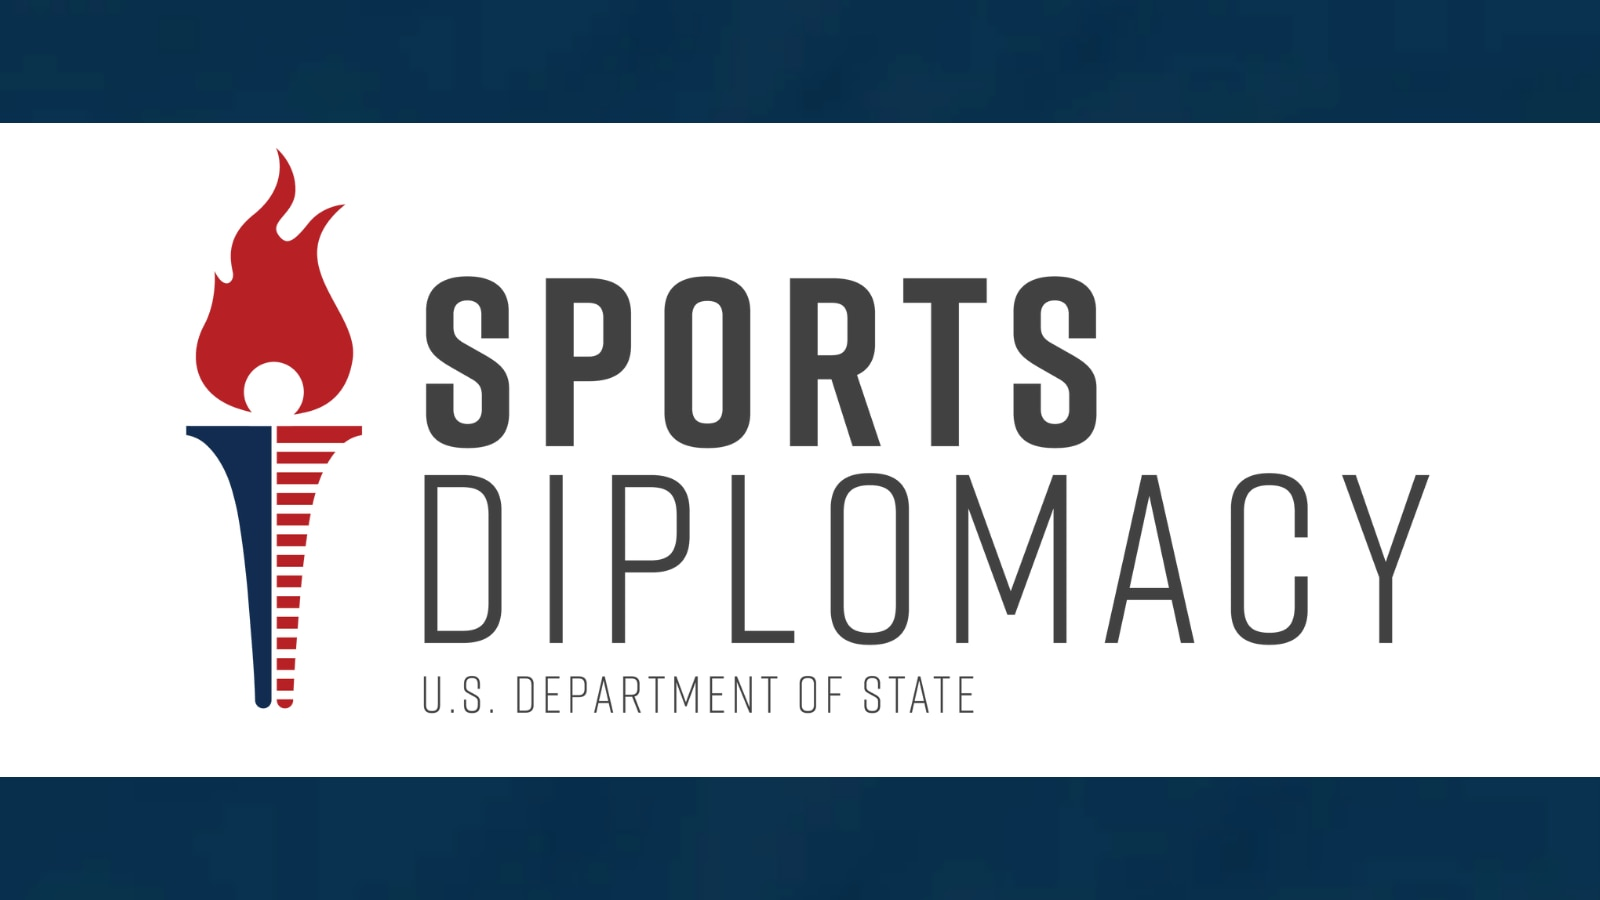 Sports Diplomacy at the U.S. Department of State